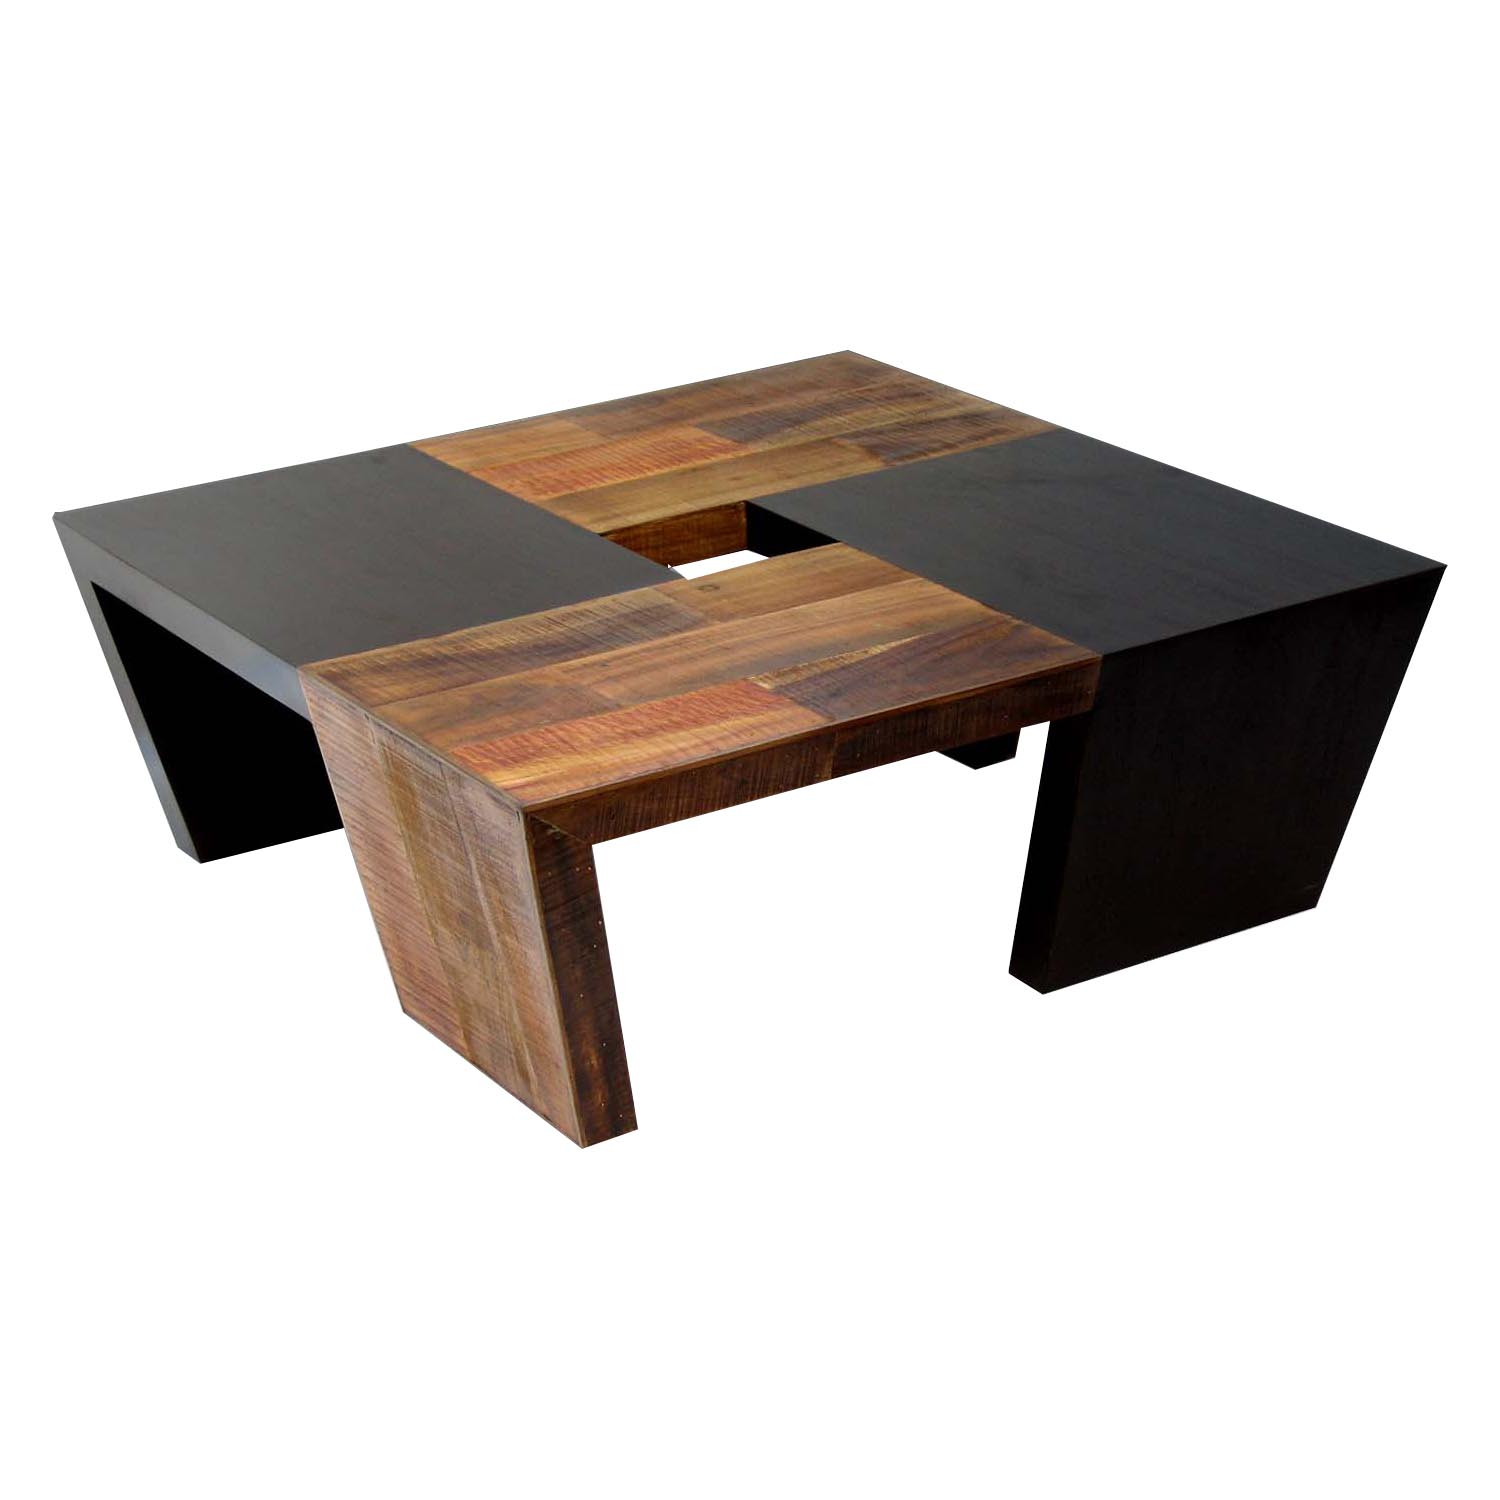 modern wooden coffee table designs photo - 6